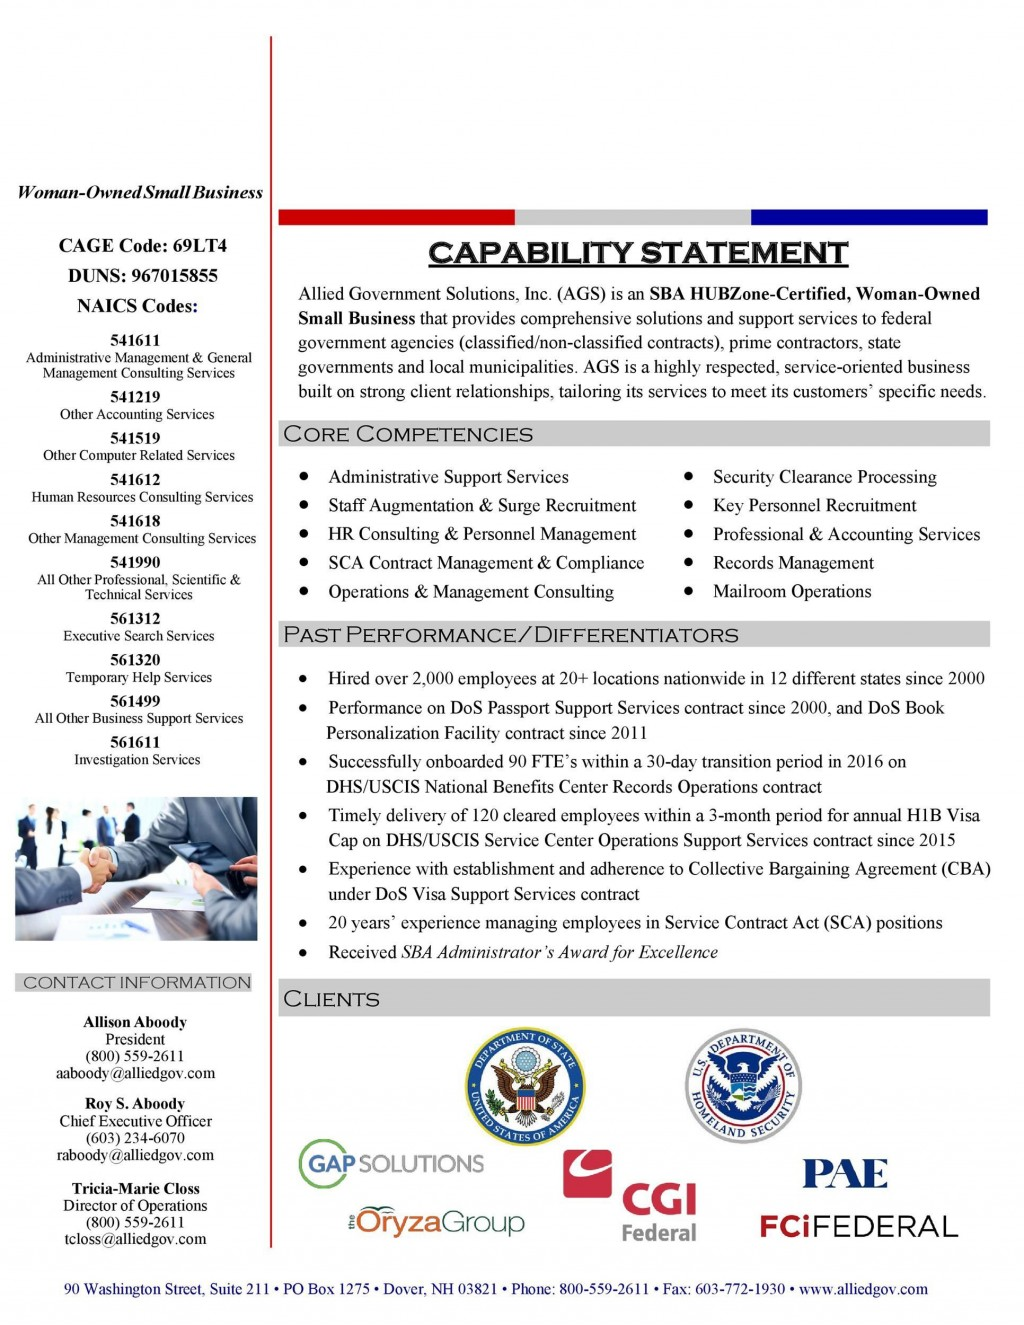 007 Remarkable Capability Statement Template Free Inspiration  Word Editable DesignLarge